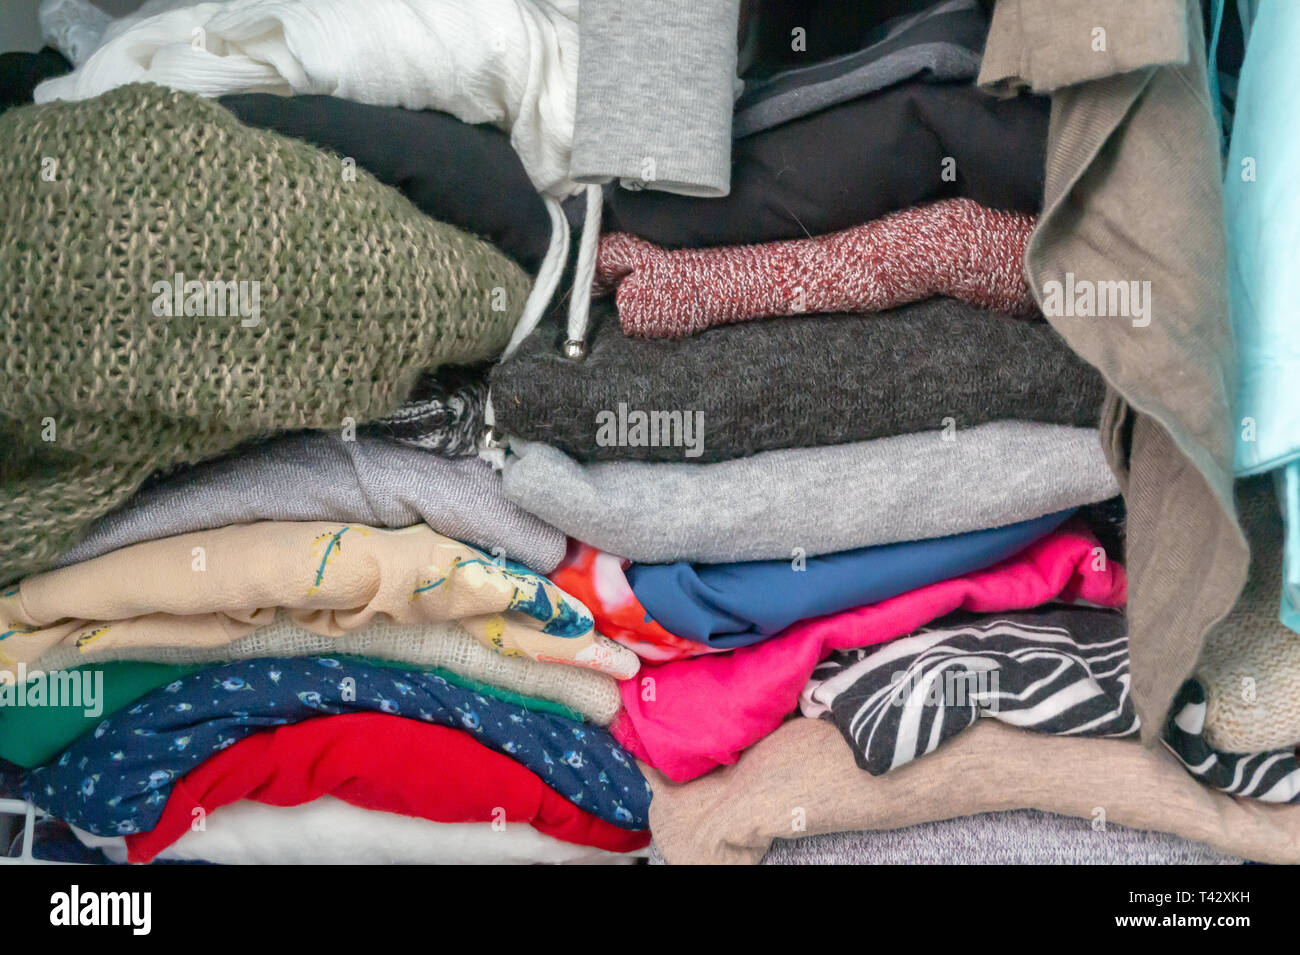 Crammed folded sweaters and garments of a woman's wardrobe in a closet. Depicting excess, the need for closet organization, tidying up, donating. - Stock Image